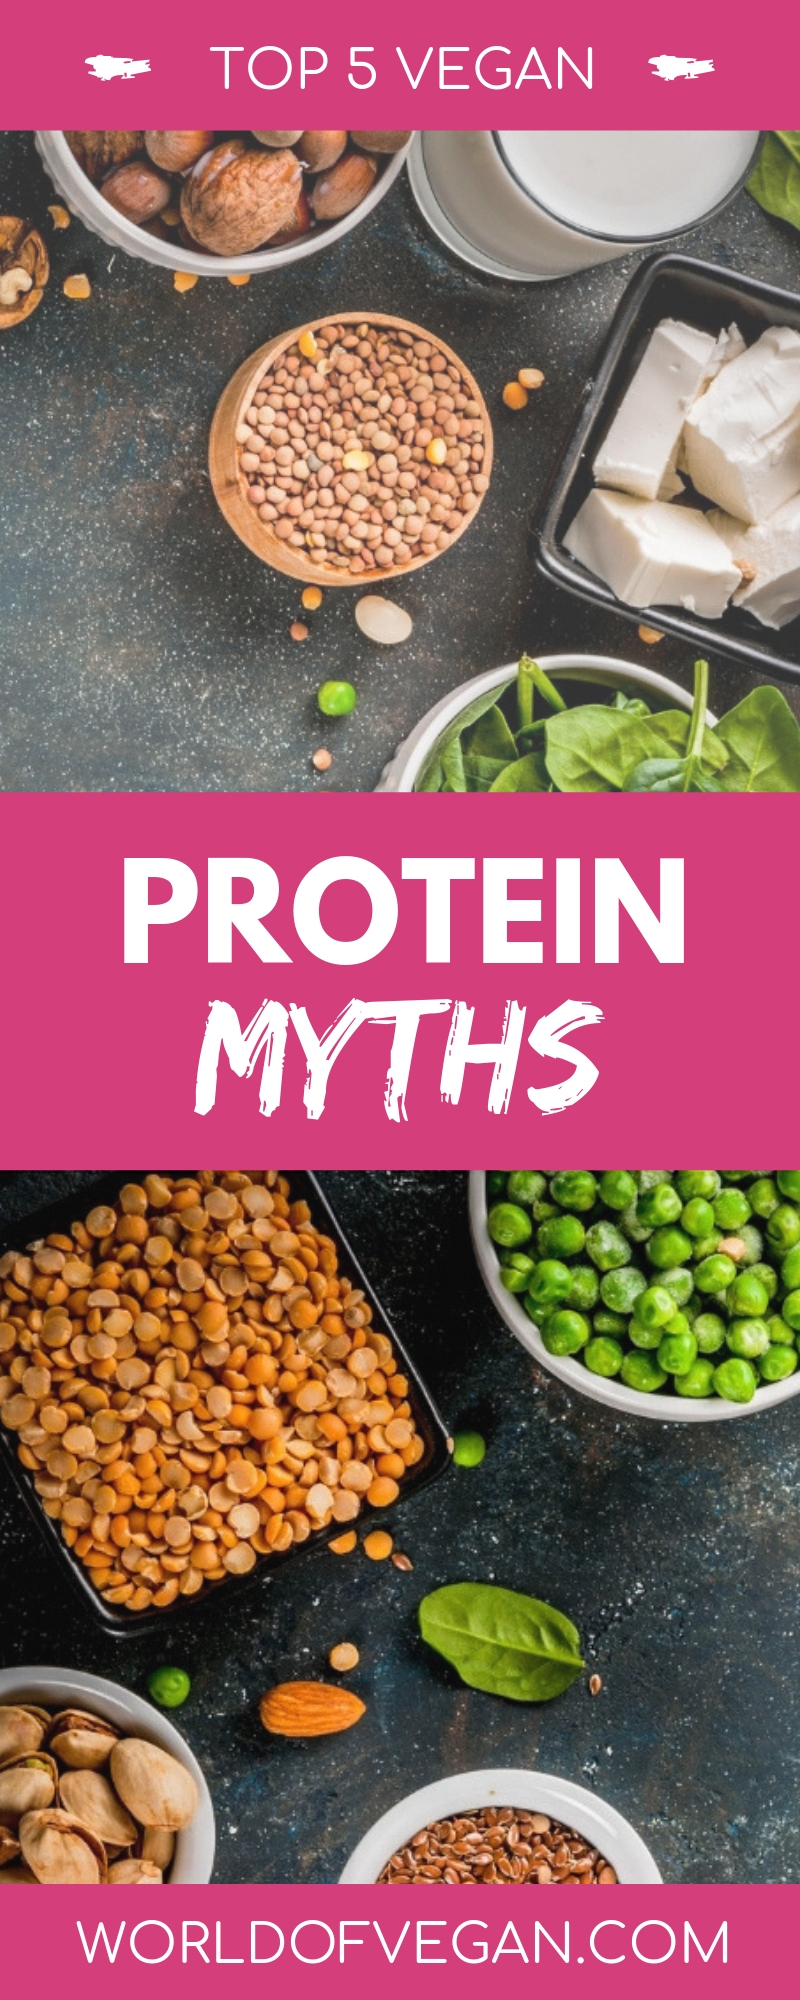 Top 5 Vegan Protein Myths Busted | WorldofVegan.com | #protein #athlete #vegan #vegetarian #health #nutrition